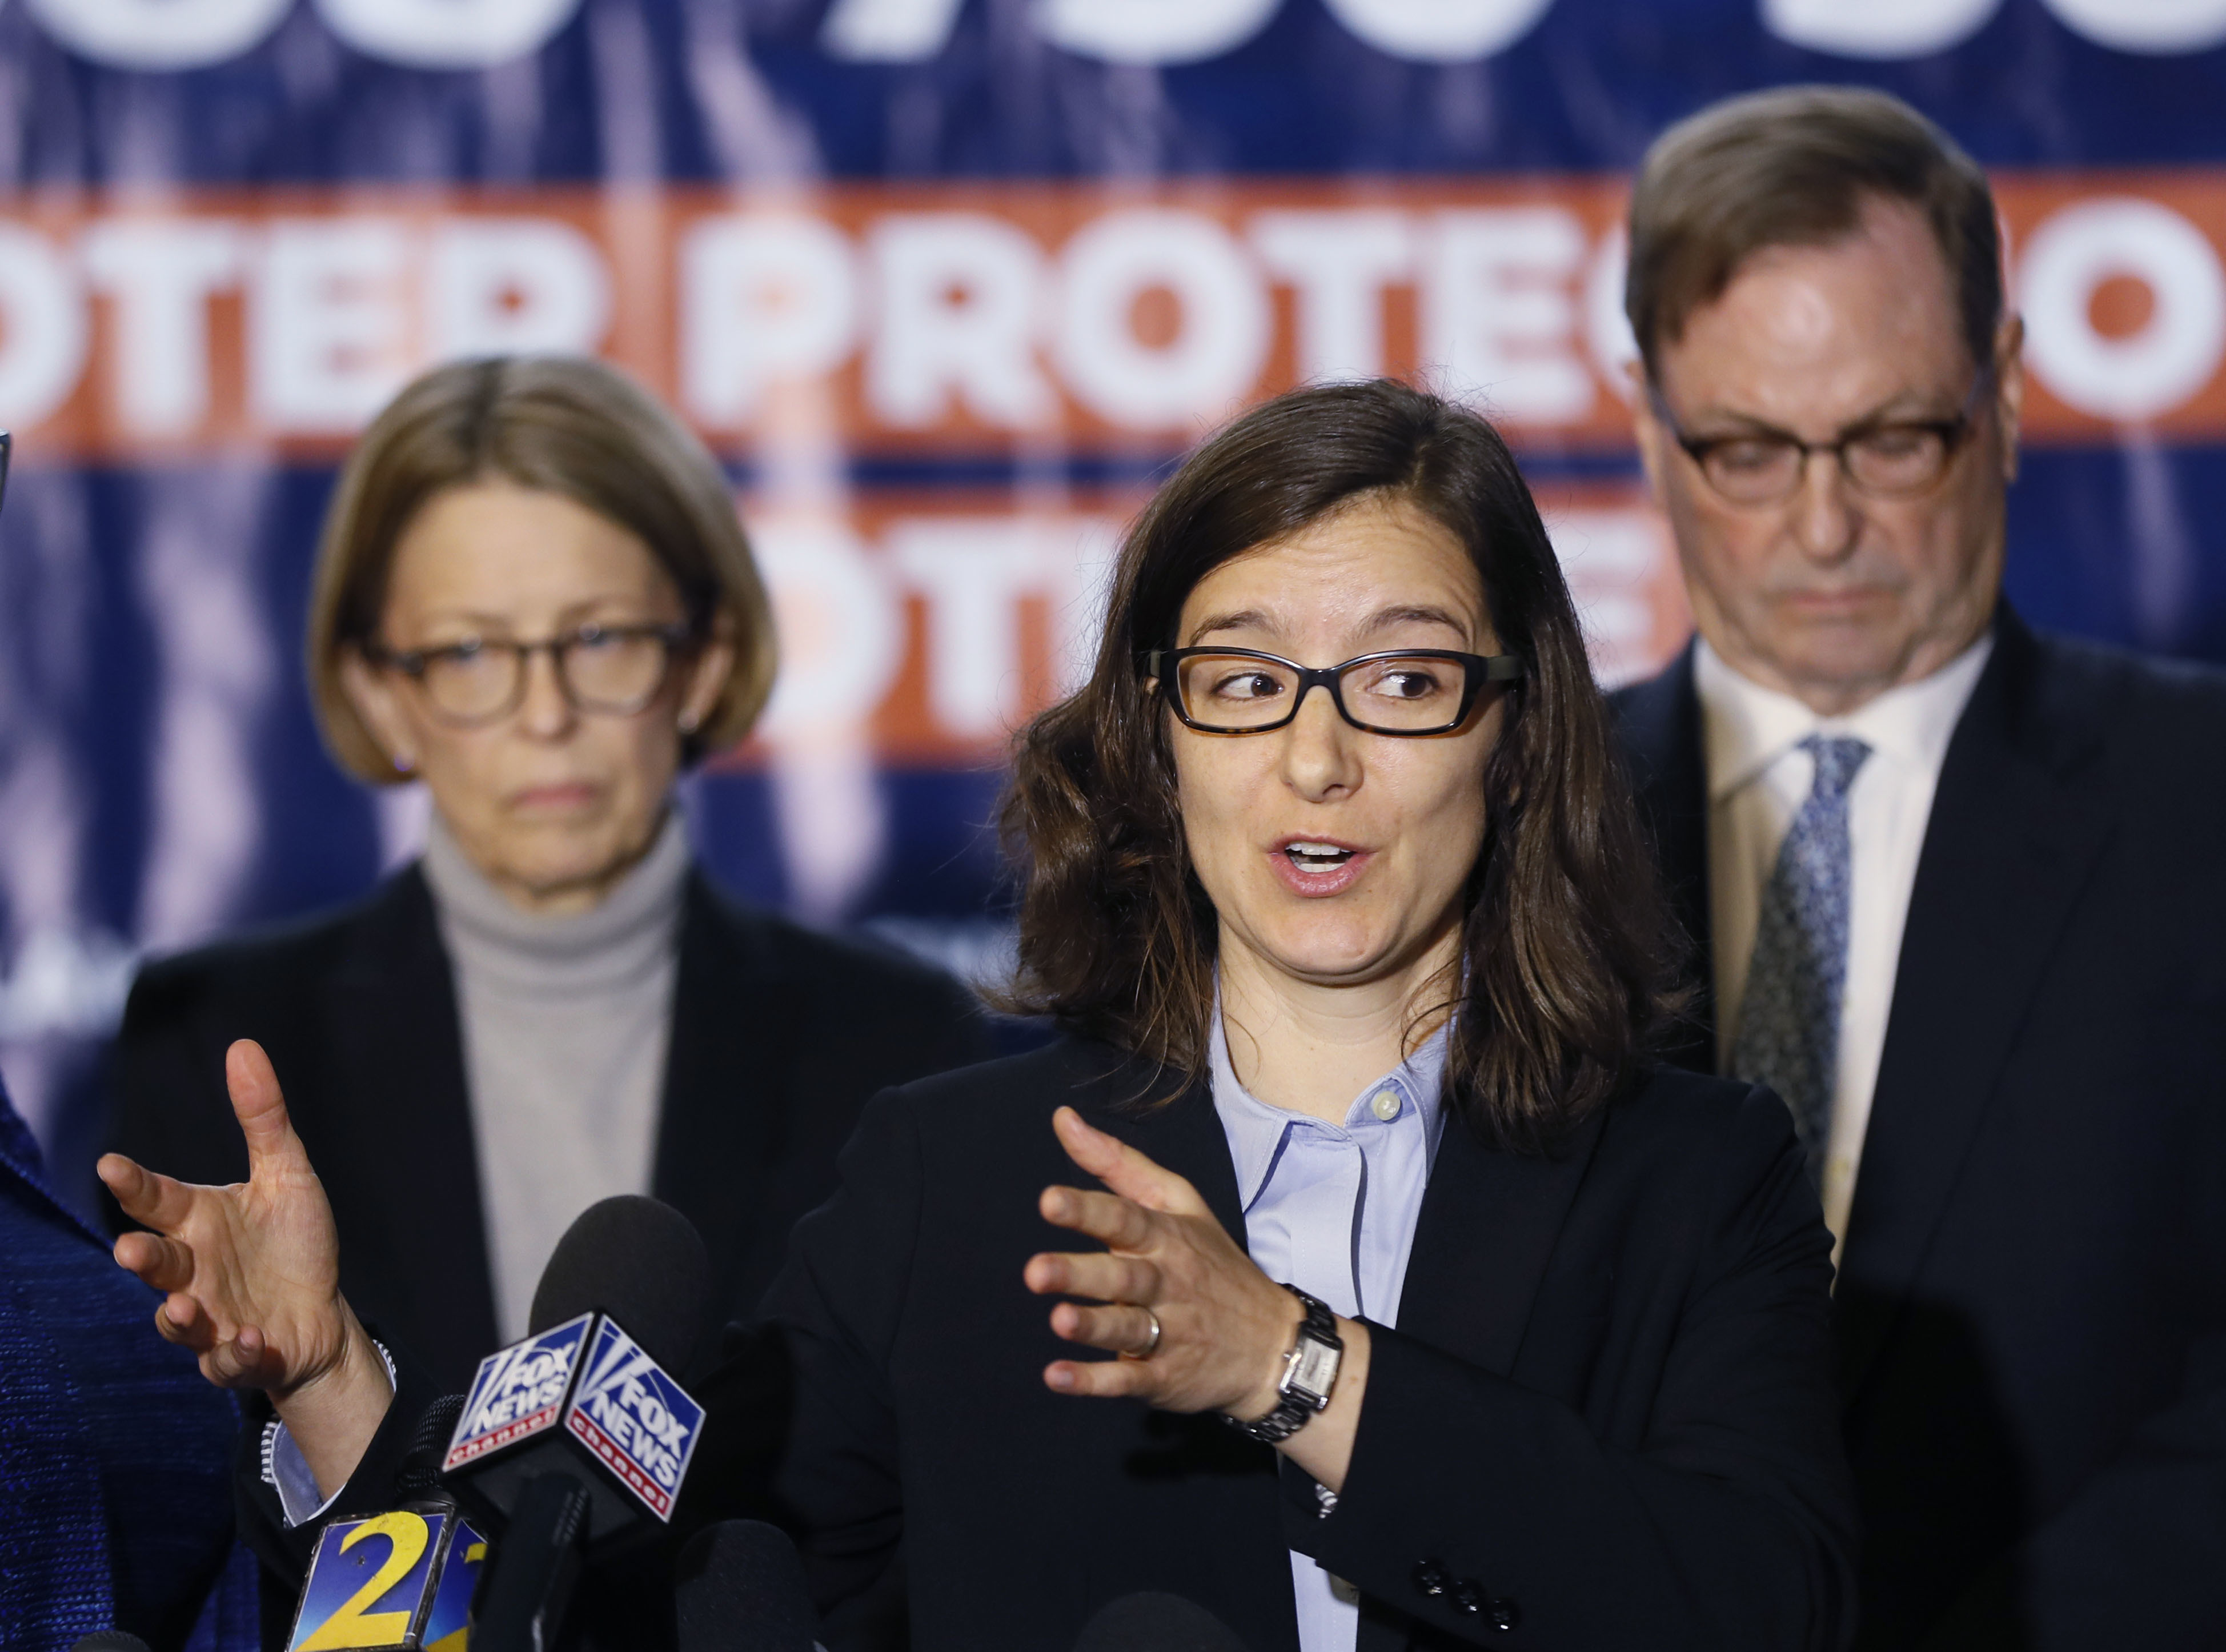 Lauren Groh-Wargo, Stacey Abrams' campaign manager, stands with attorneys as she speaks at a news conference Thursday, Nov. 8, 2018, in Atlanta. Republican Brian Kemp resigned Thursday as Georgia's secretary of state, a day after his campaign said he's captured enough votes to become governor despite his rival's refusal to concede. Abrams' campaign immediately responded by refusing to accept Kemp's declaration of victory in the race and demanding that state officials